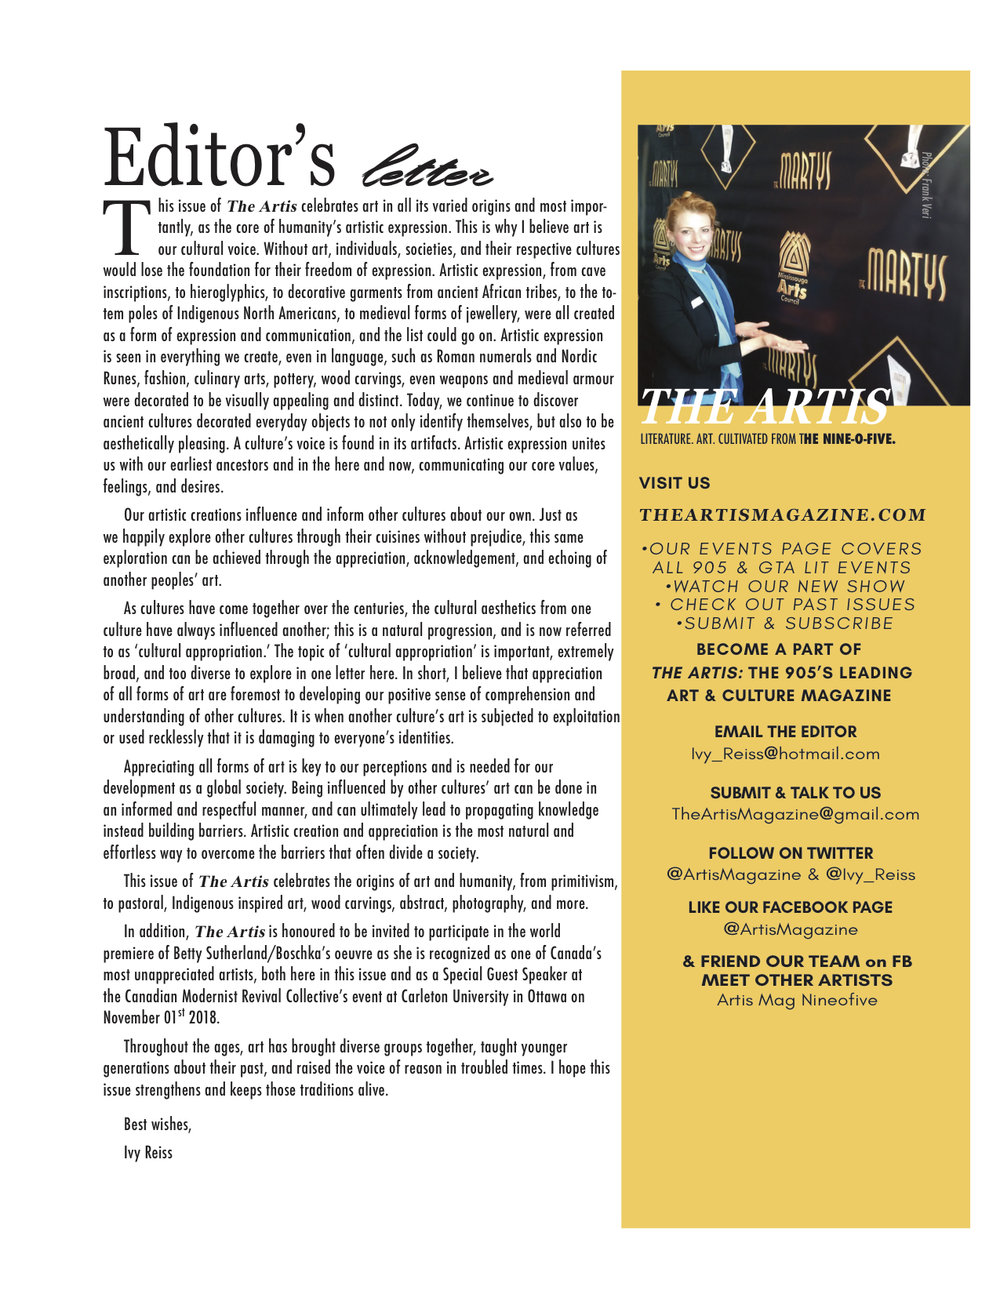 The Artis 4: Origins of Art  issue: Editor's Letter